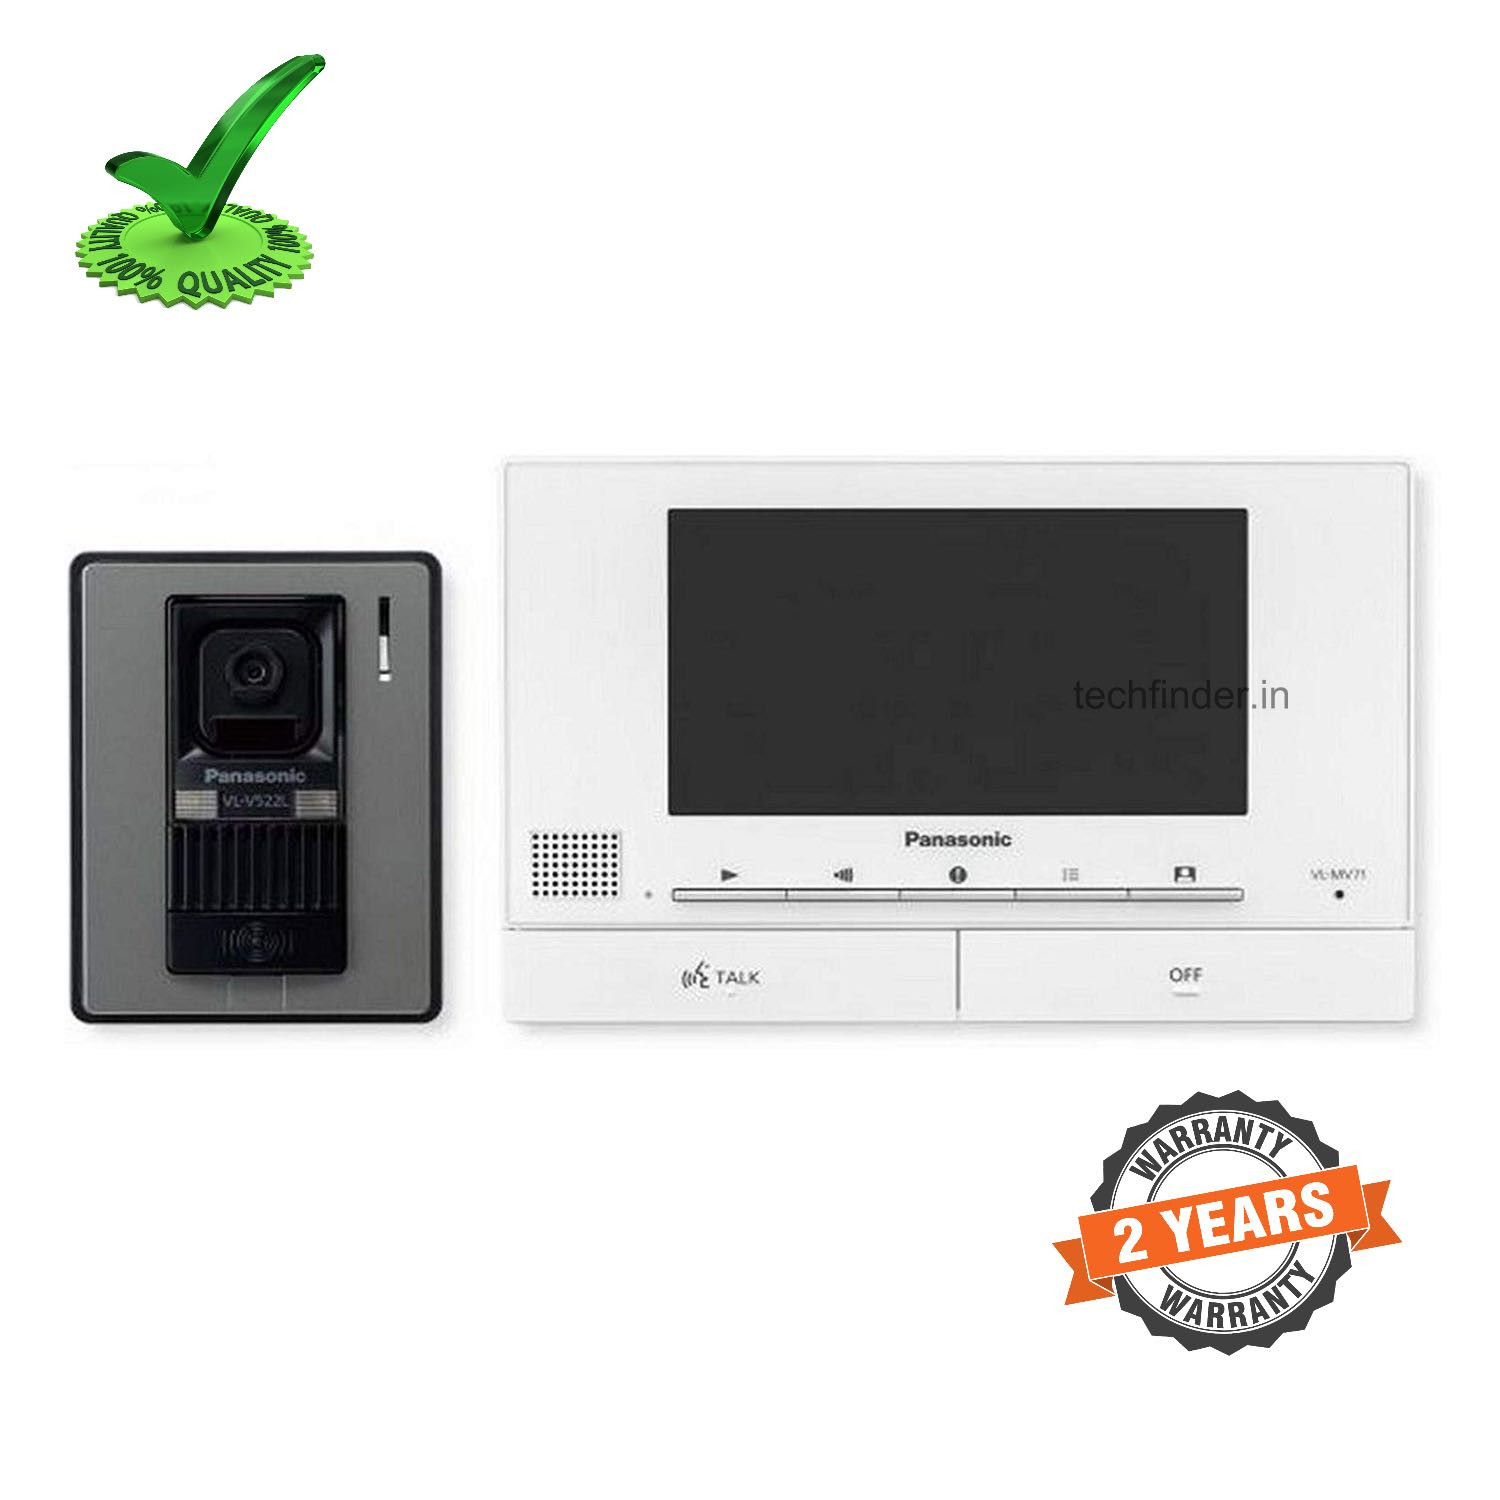 Panasonic VL-SV71 Video Intercom Systems